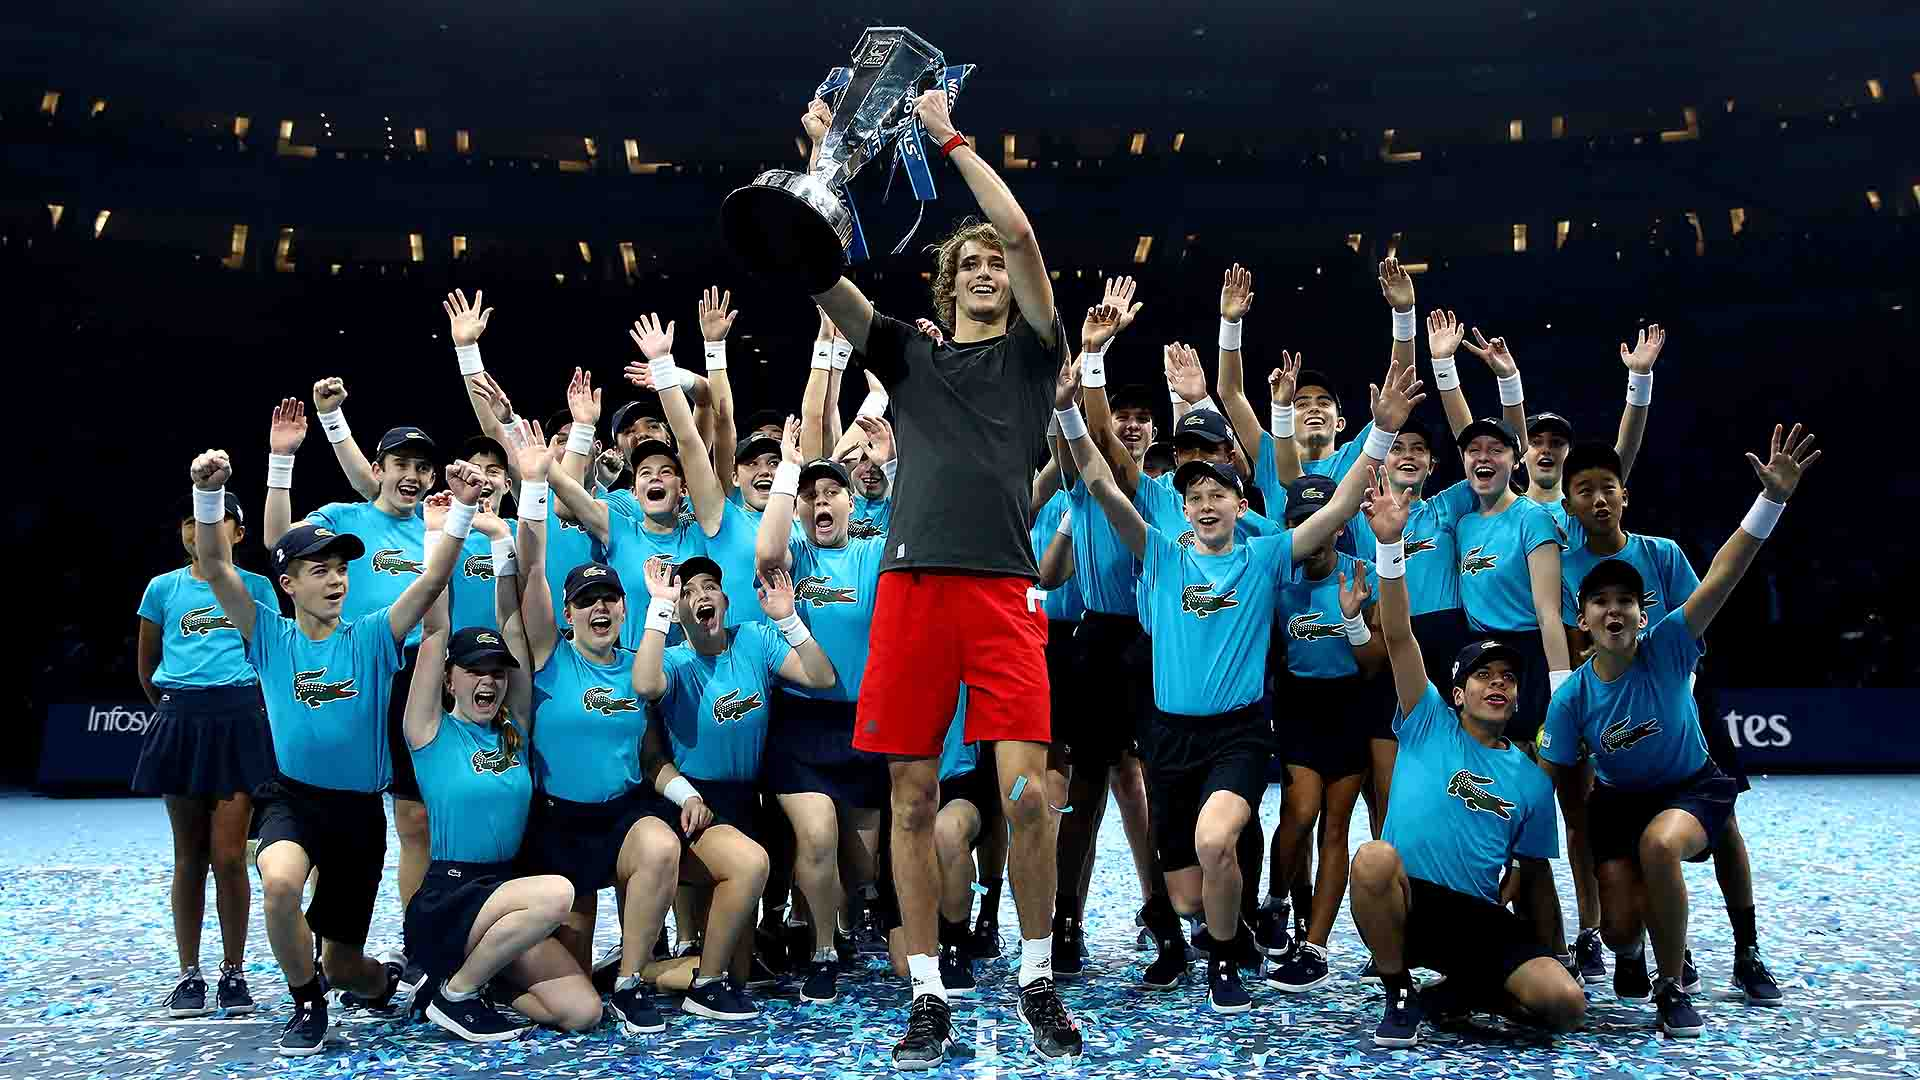 01 Zverev Nitto ATP Finals 2018 Sunday Trophy Ballkids